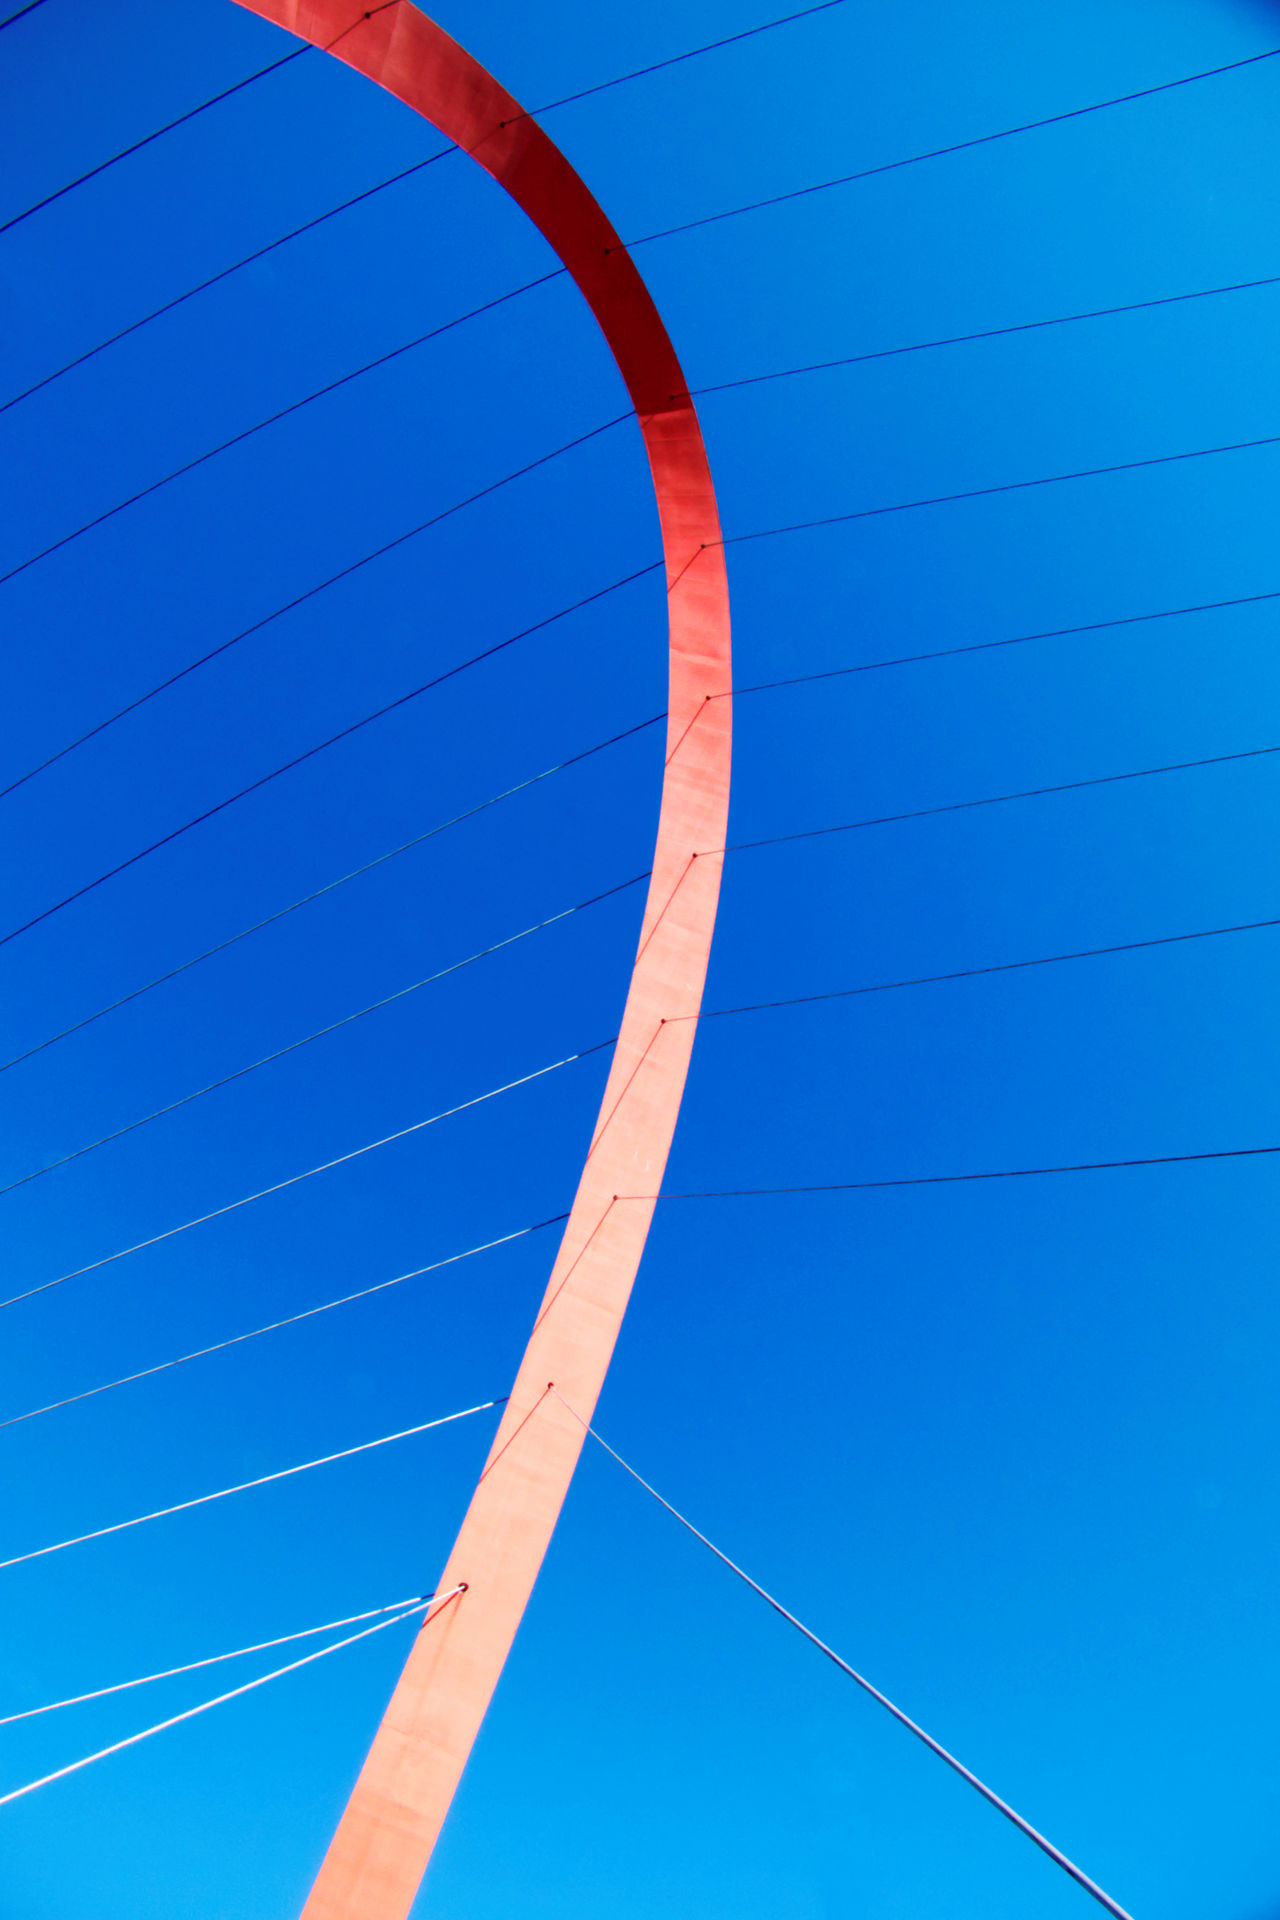 Arch Architectural Detail Architectural Feature Blue Bridge Clear Sky Close-up Connection Contemporary Architecture Crossing Borders Day Engineering Feat No People Olympic Olympic Park  Outdoors Real People